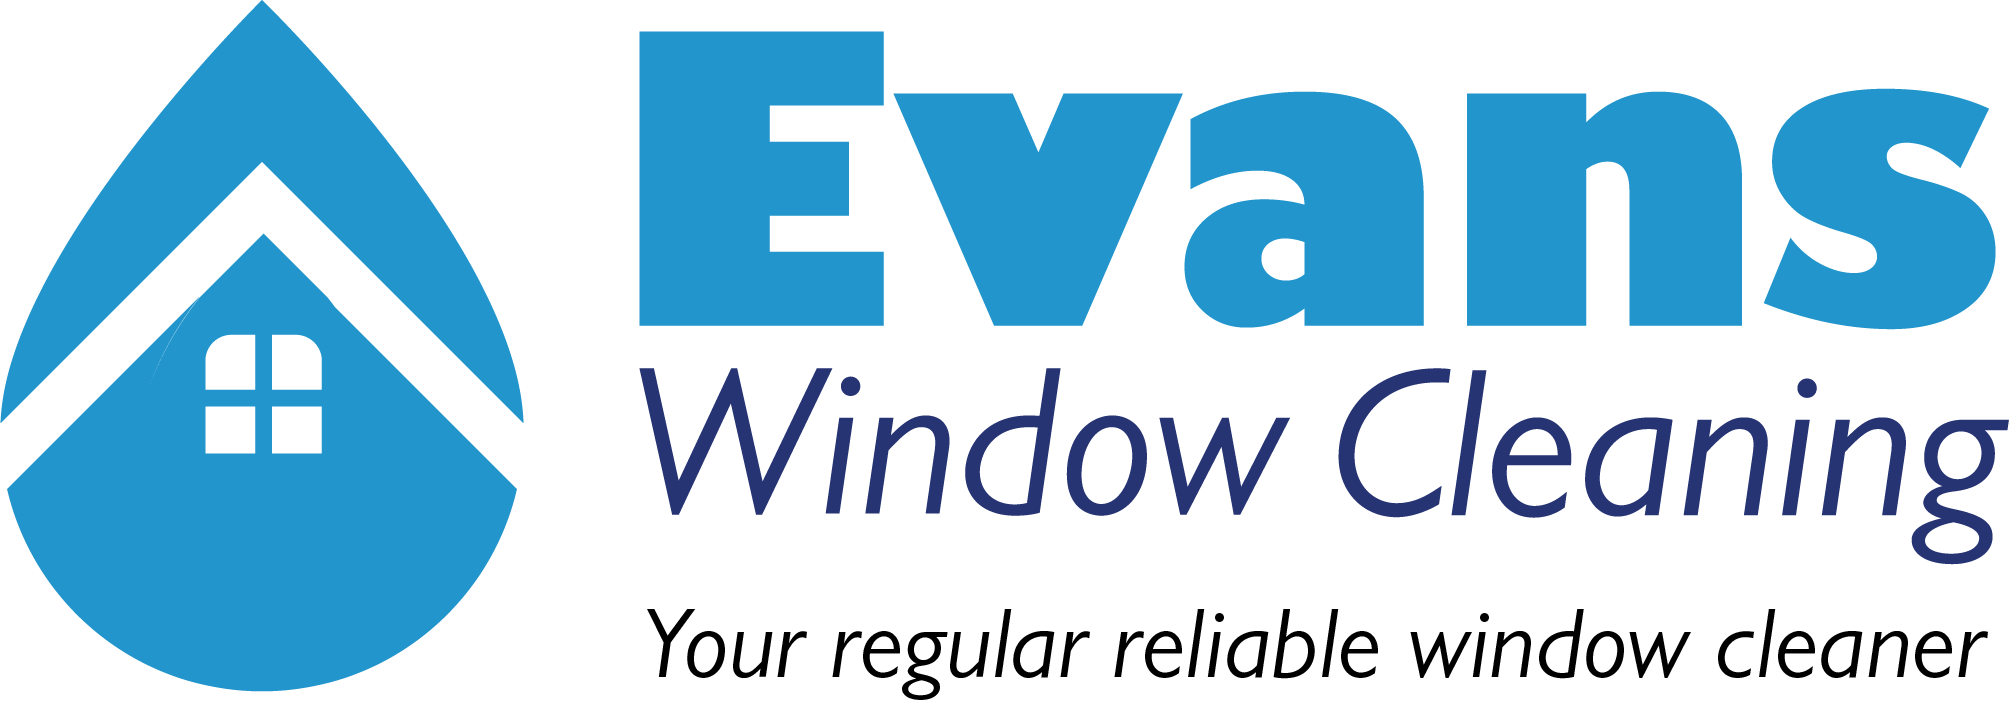 Evans Window Cleaning Logo